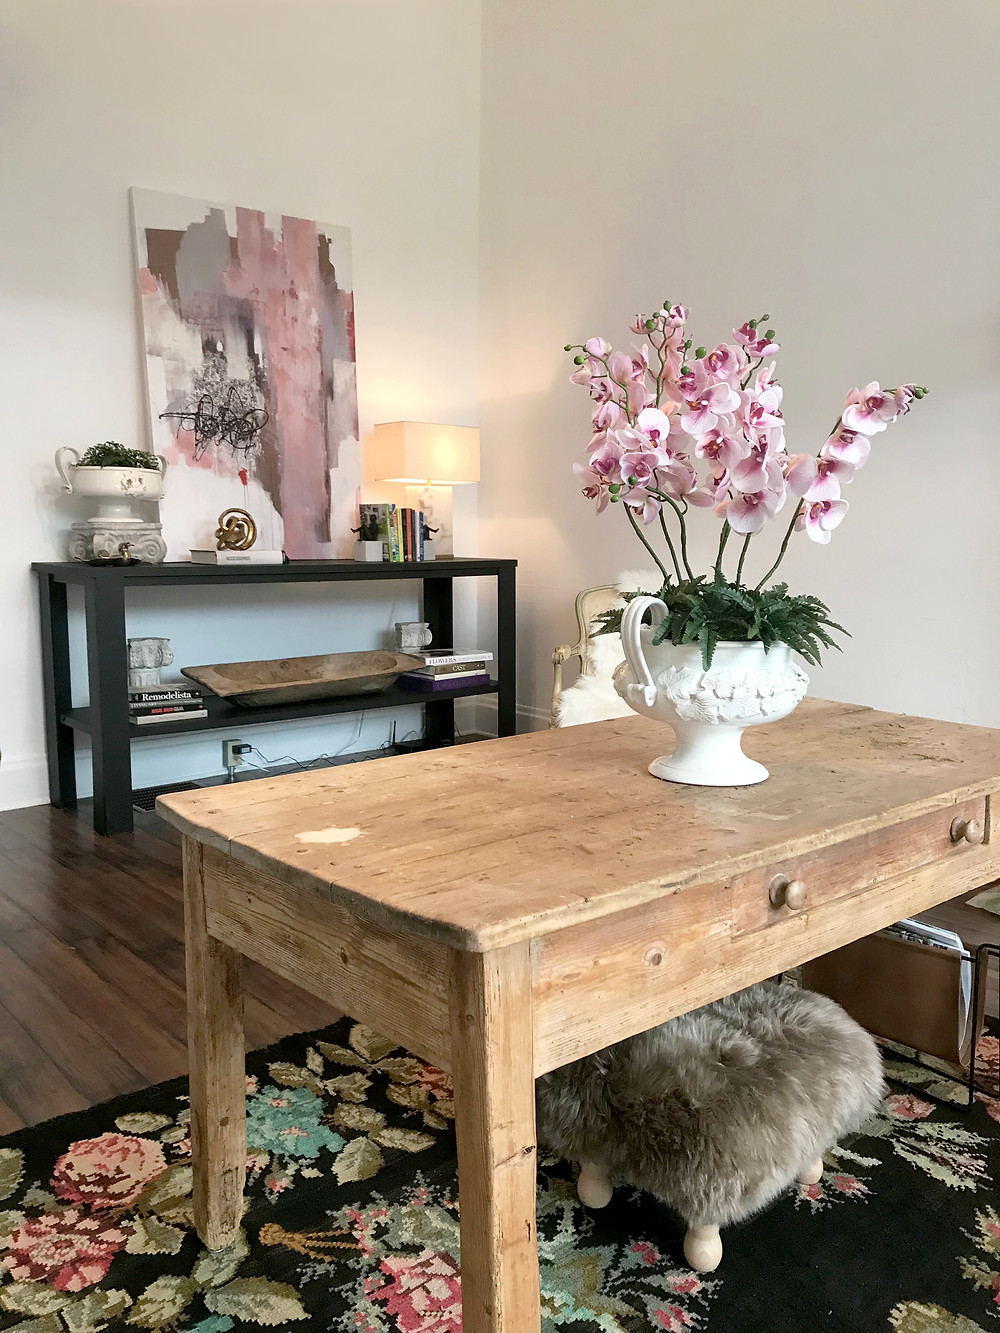 an image of a staged home with a hand-made faux-flower arrangement